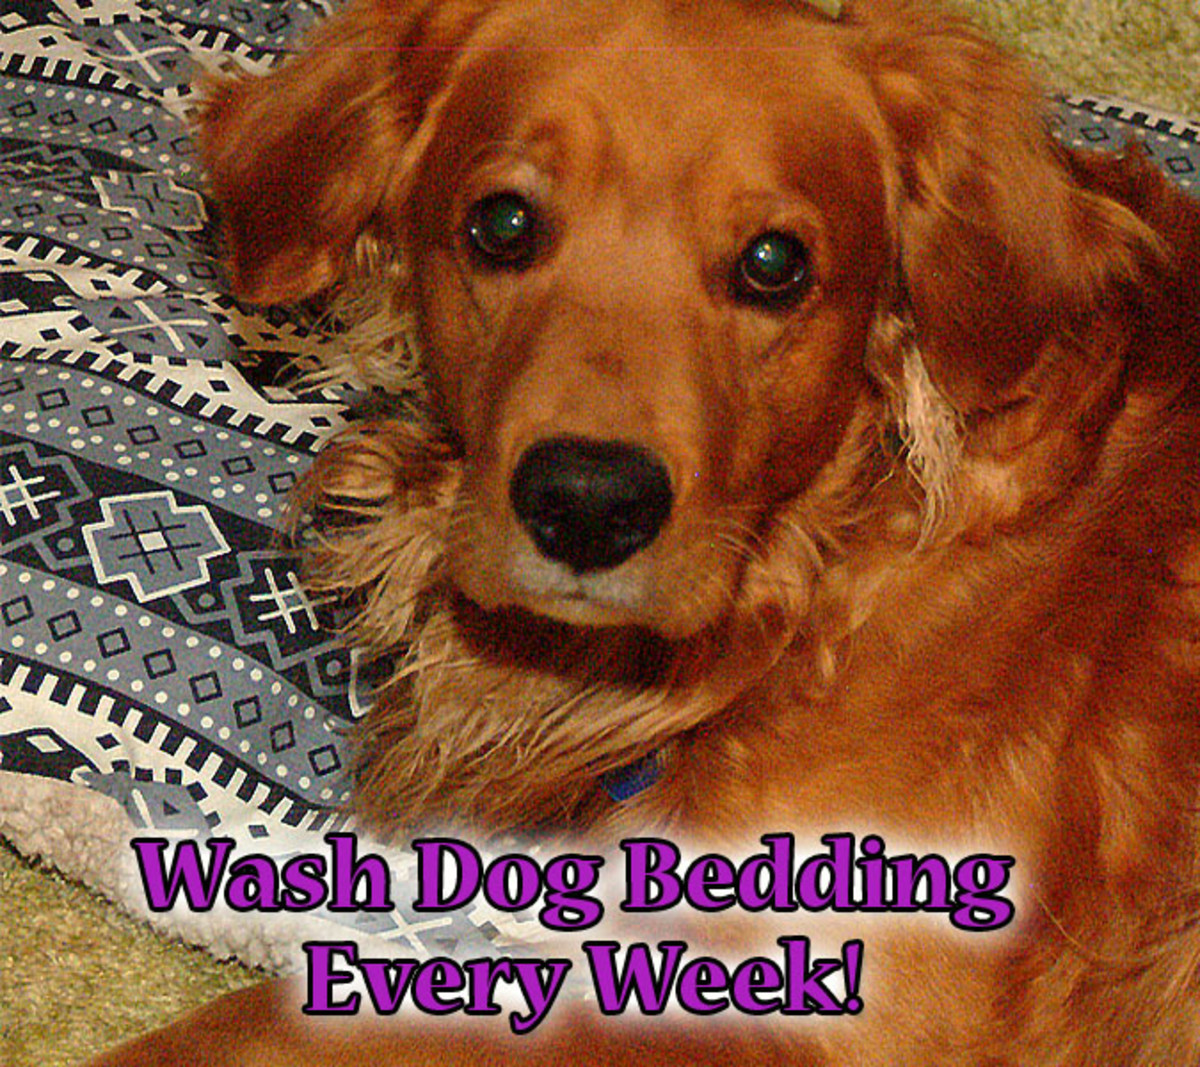 Wash you dogs bedding at least once a week to reduce flea reproduction by interrupting the life cycle.